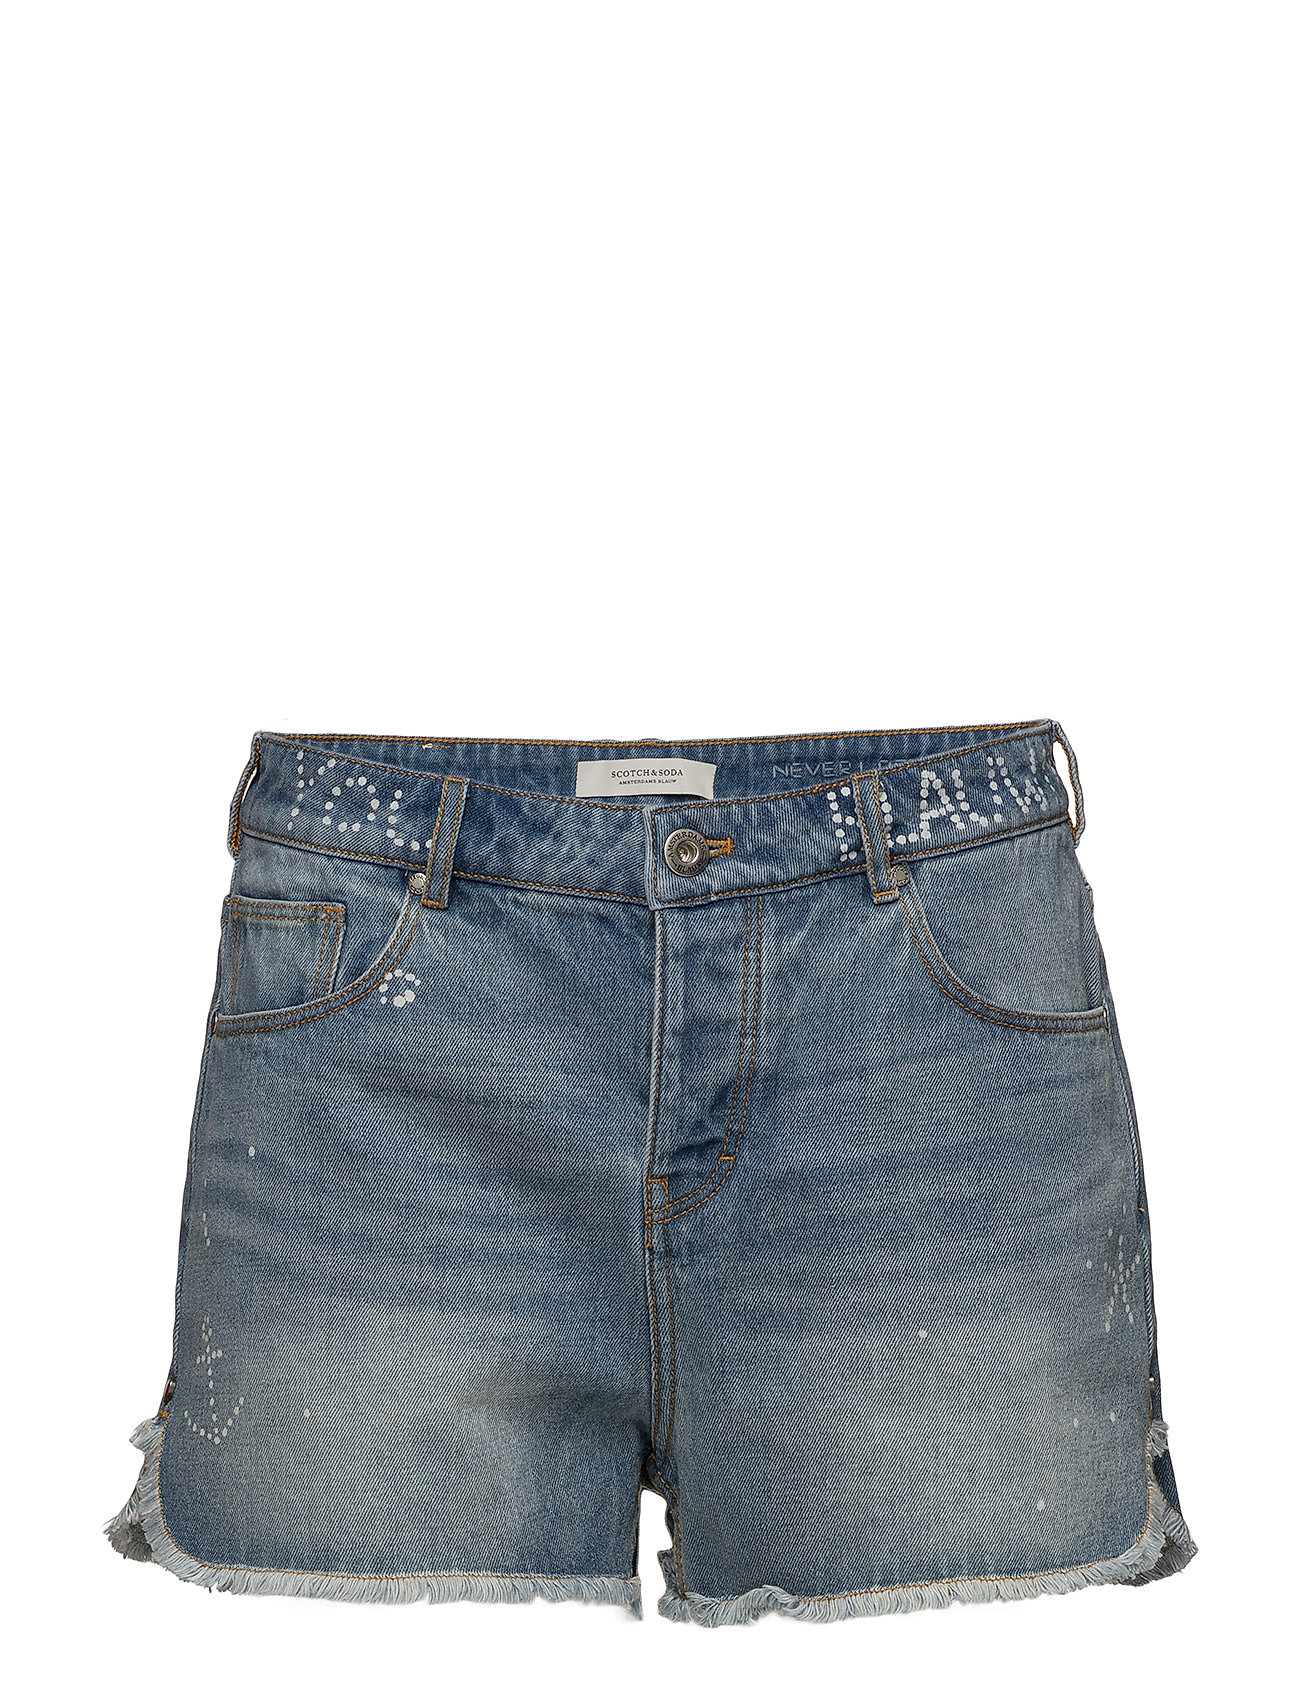 Scotch & Soda Shorts - Ocean Shades - DENIM BLUE